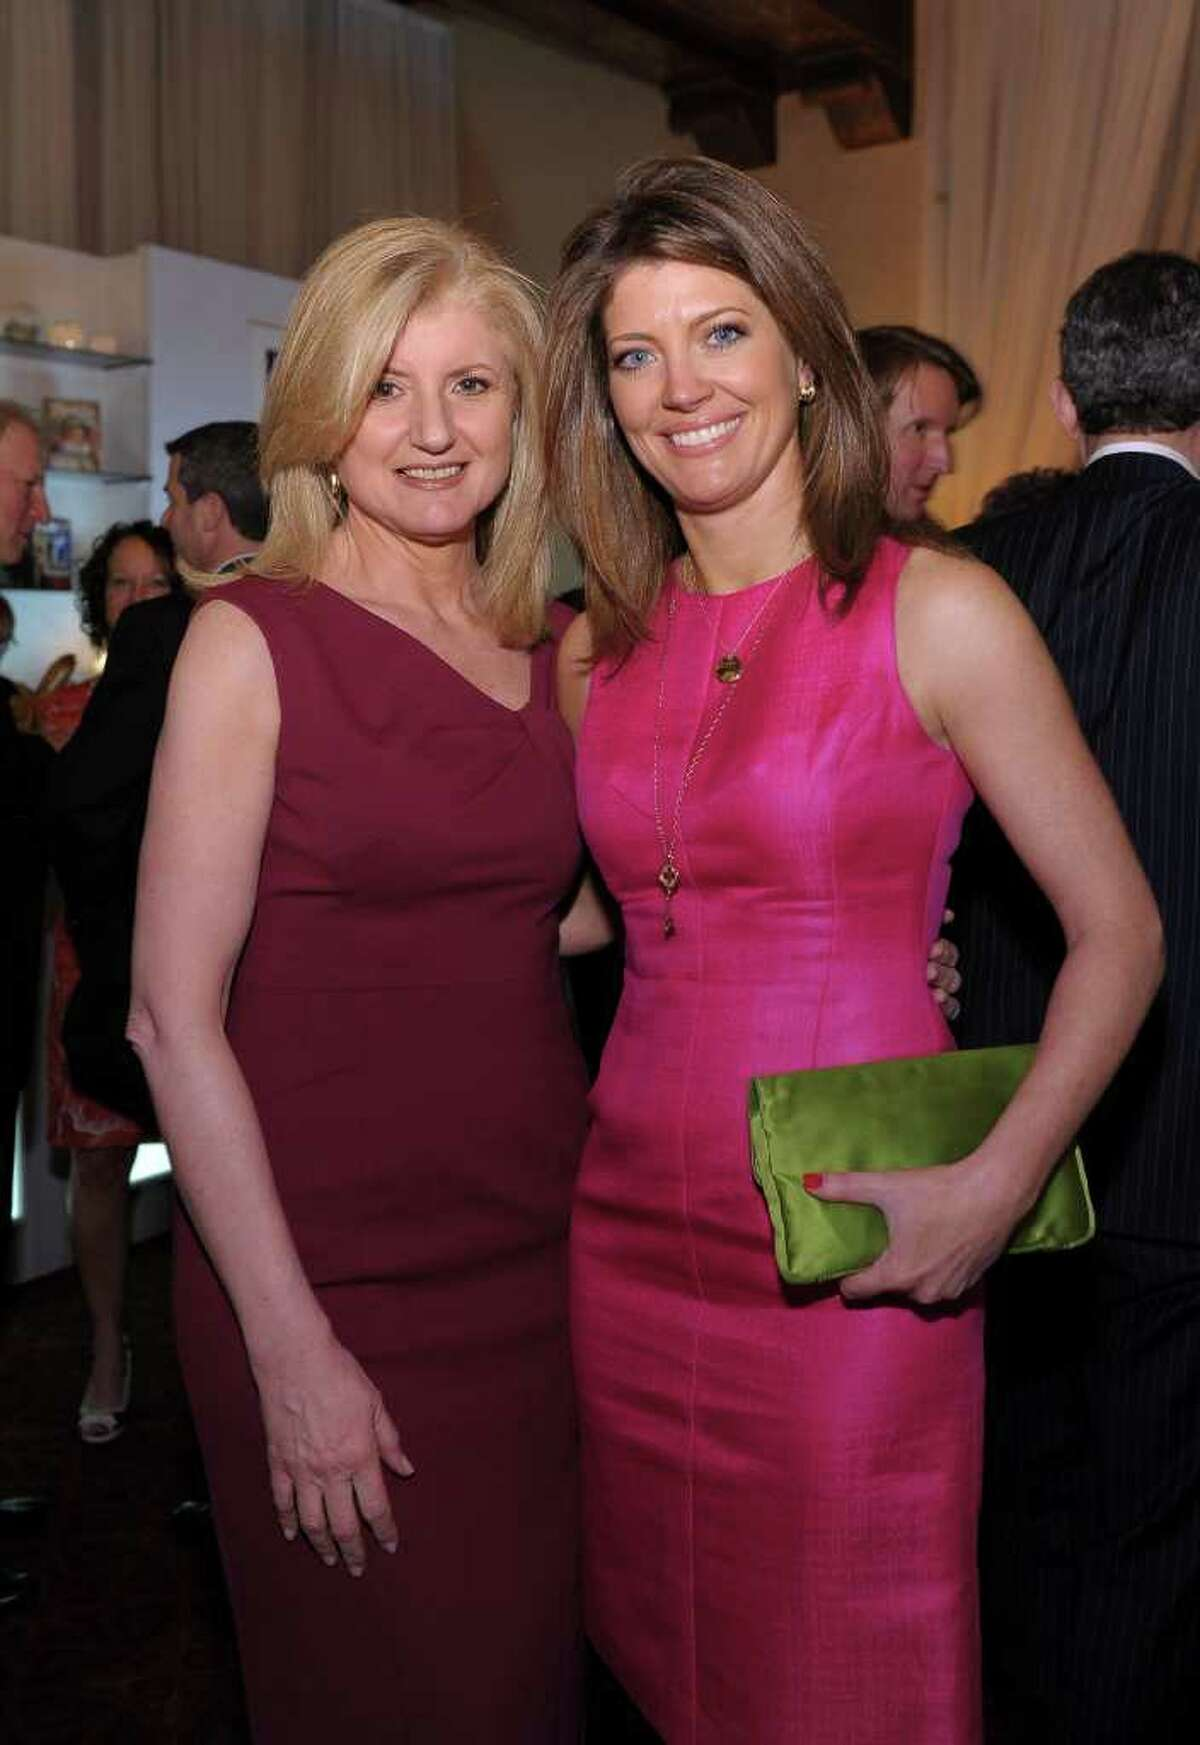 WASHINGTON, DC - APRIL 29: Journalists Arianna Huffington (L) and Norah O'Donnell attend the People/TIME White House Correspondents' dinner cocktail party at the St. Regis Hotel on April 29, 2011 in Washington, DC. (Photo by Michael Loccisano/Getty Images for TIME) *** Local Caption *** Arianna Huffington;Norah O'Donnell;